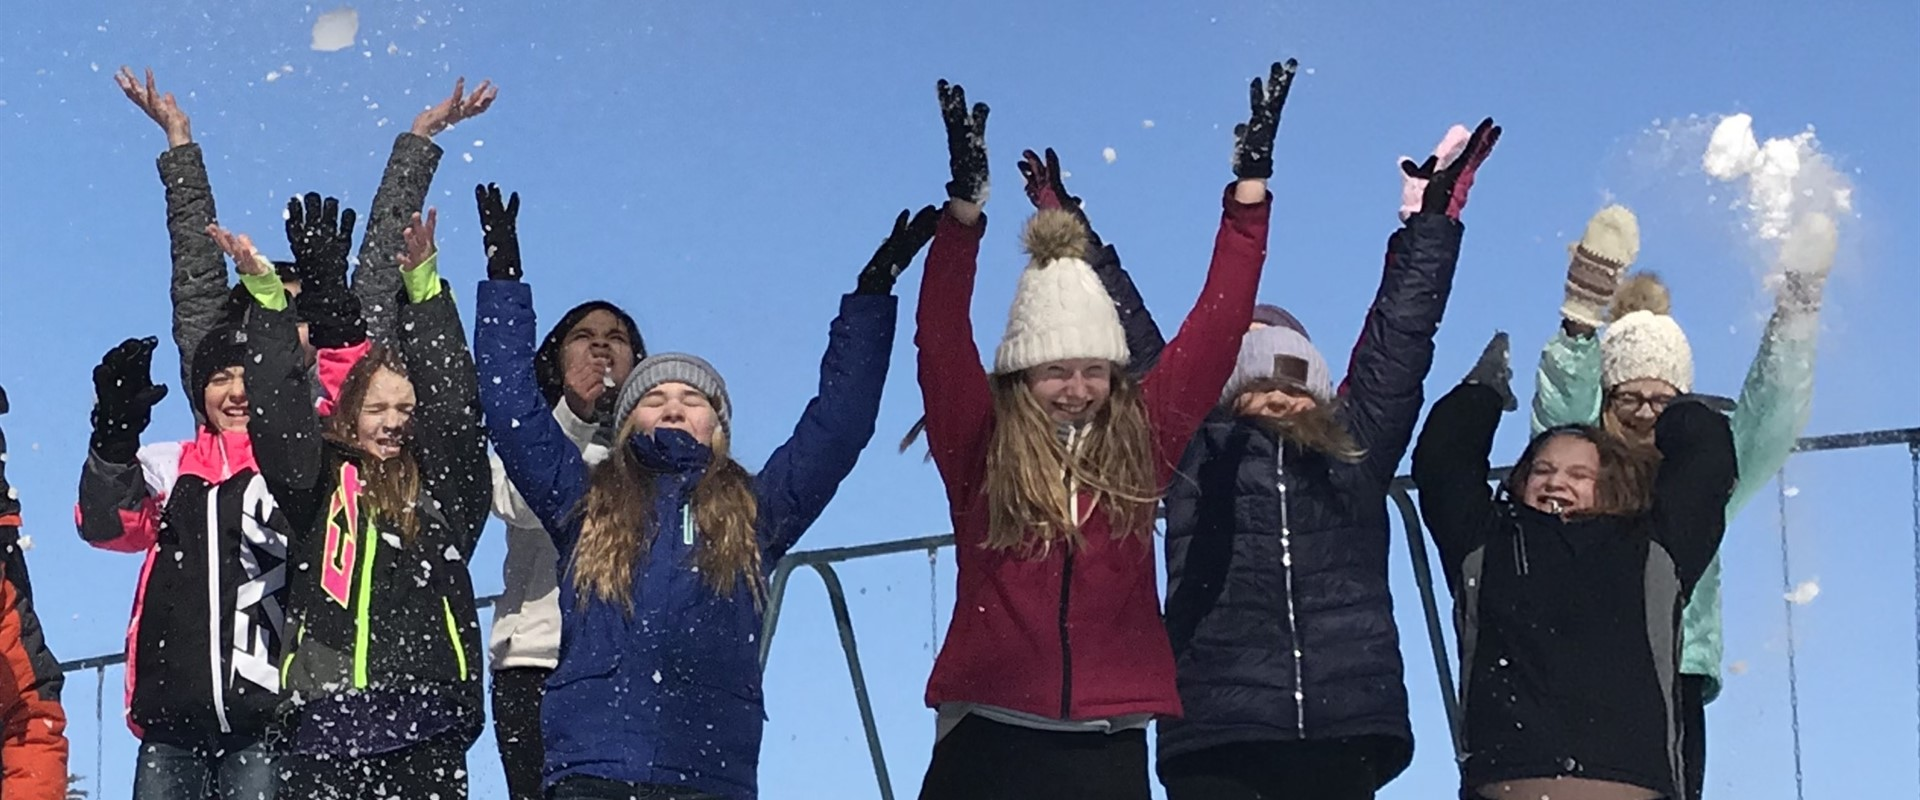 The 6th grade got to enjoy the beautiful Minnesota snowfall!